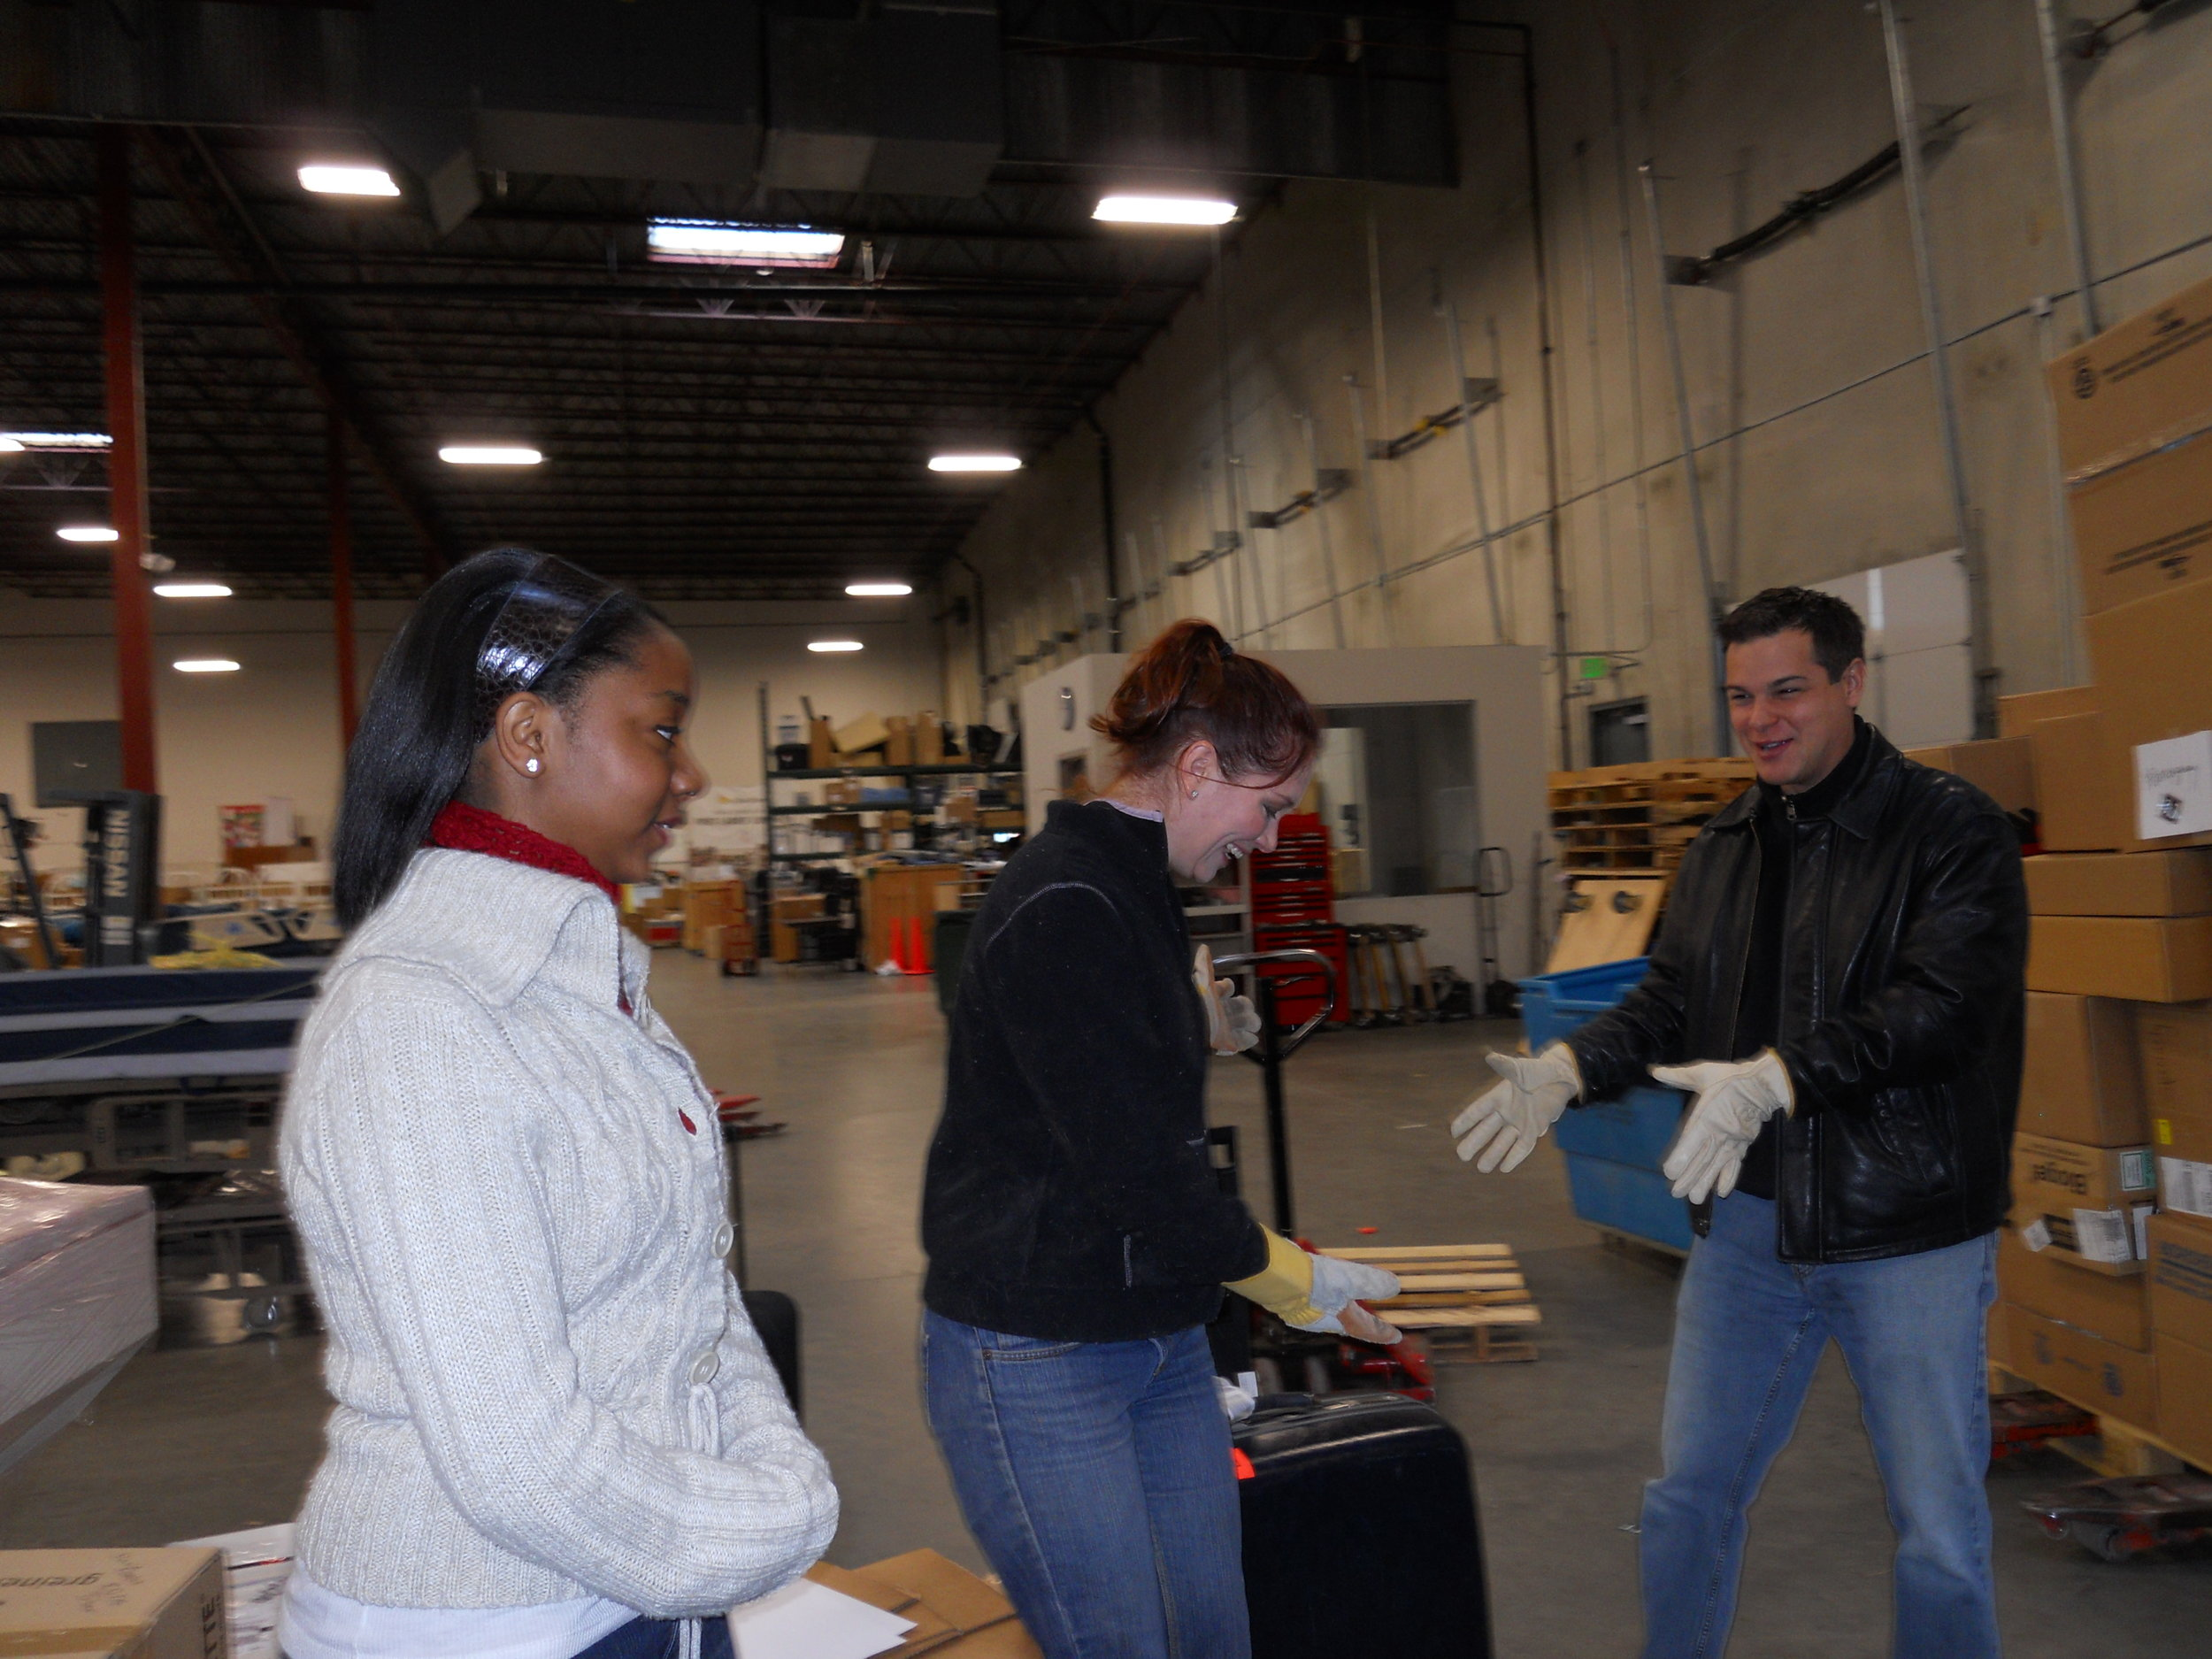 Project C.U.R.E. staff and volunteers organizing the loading process